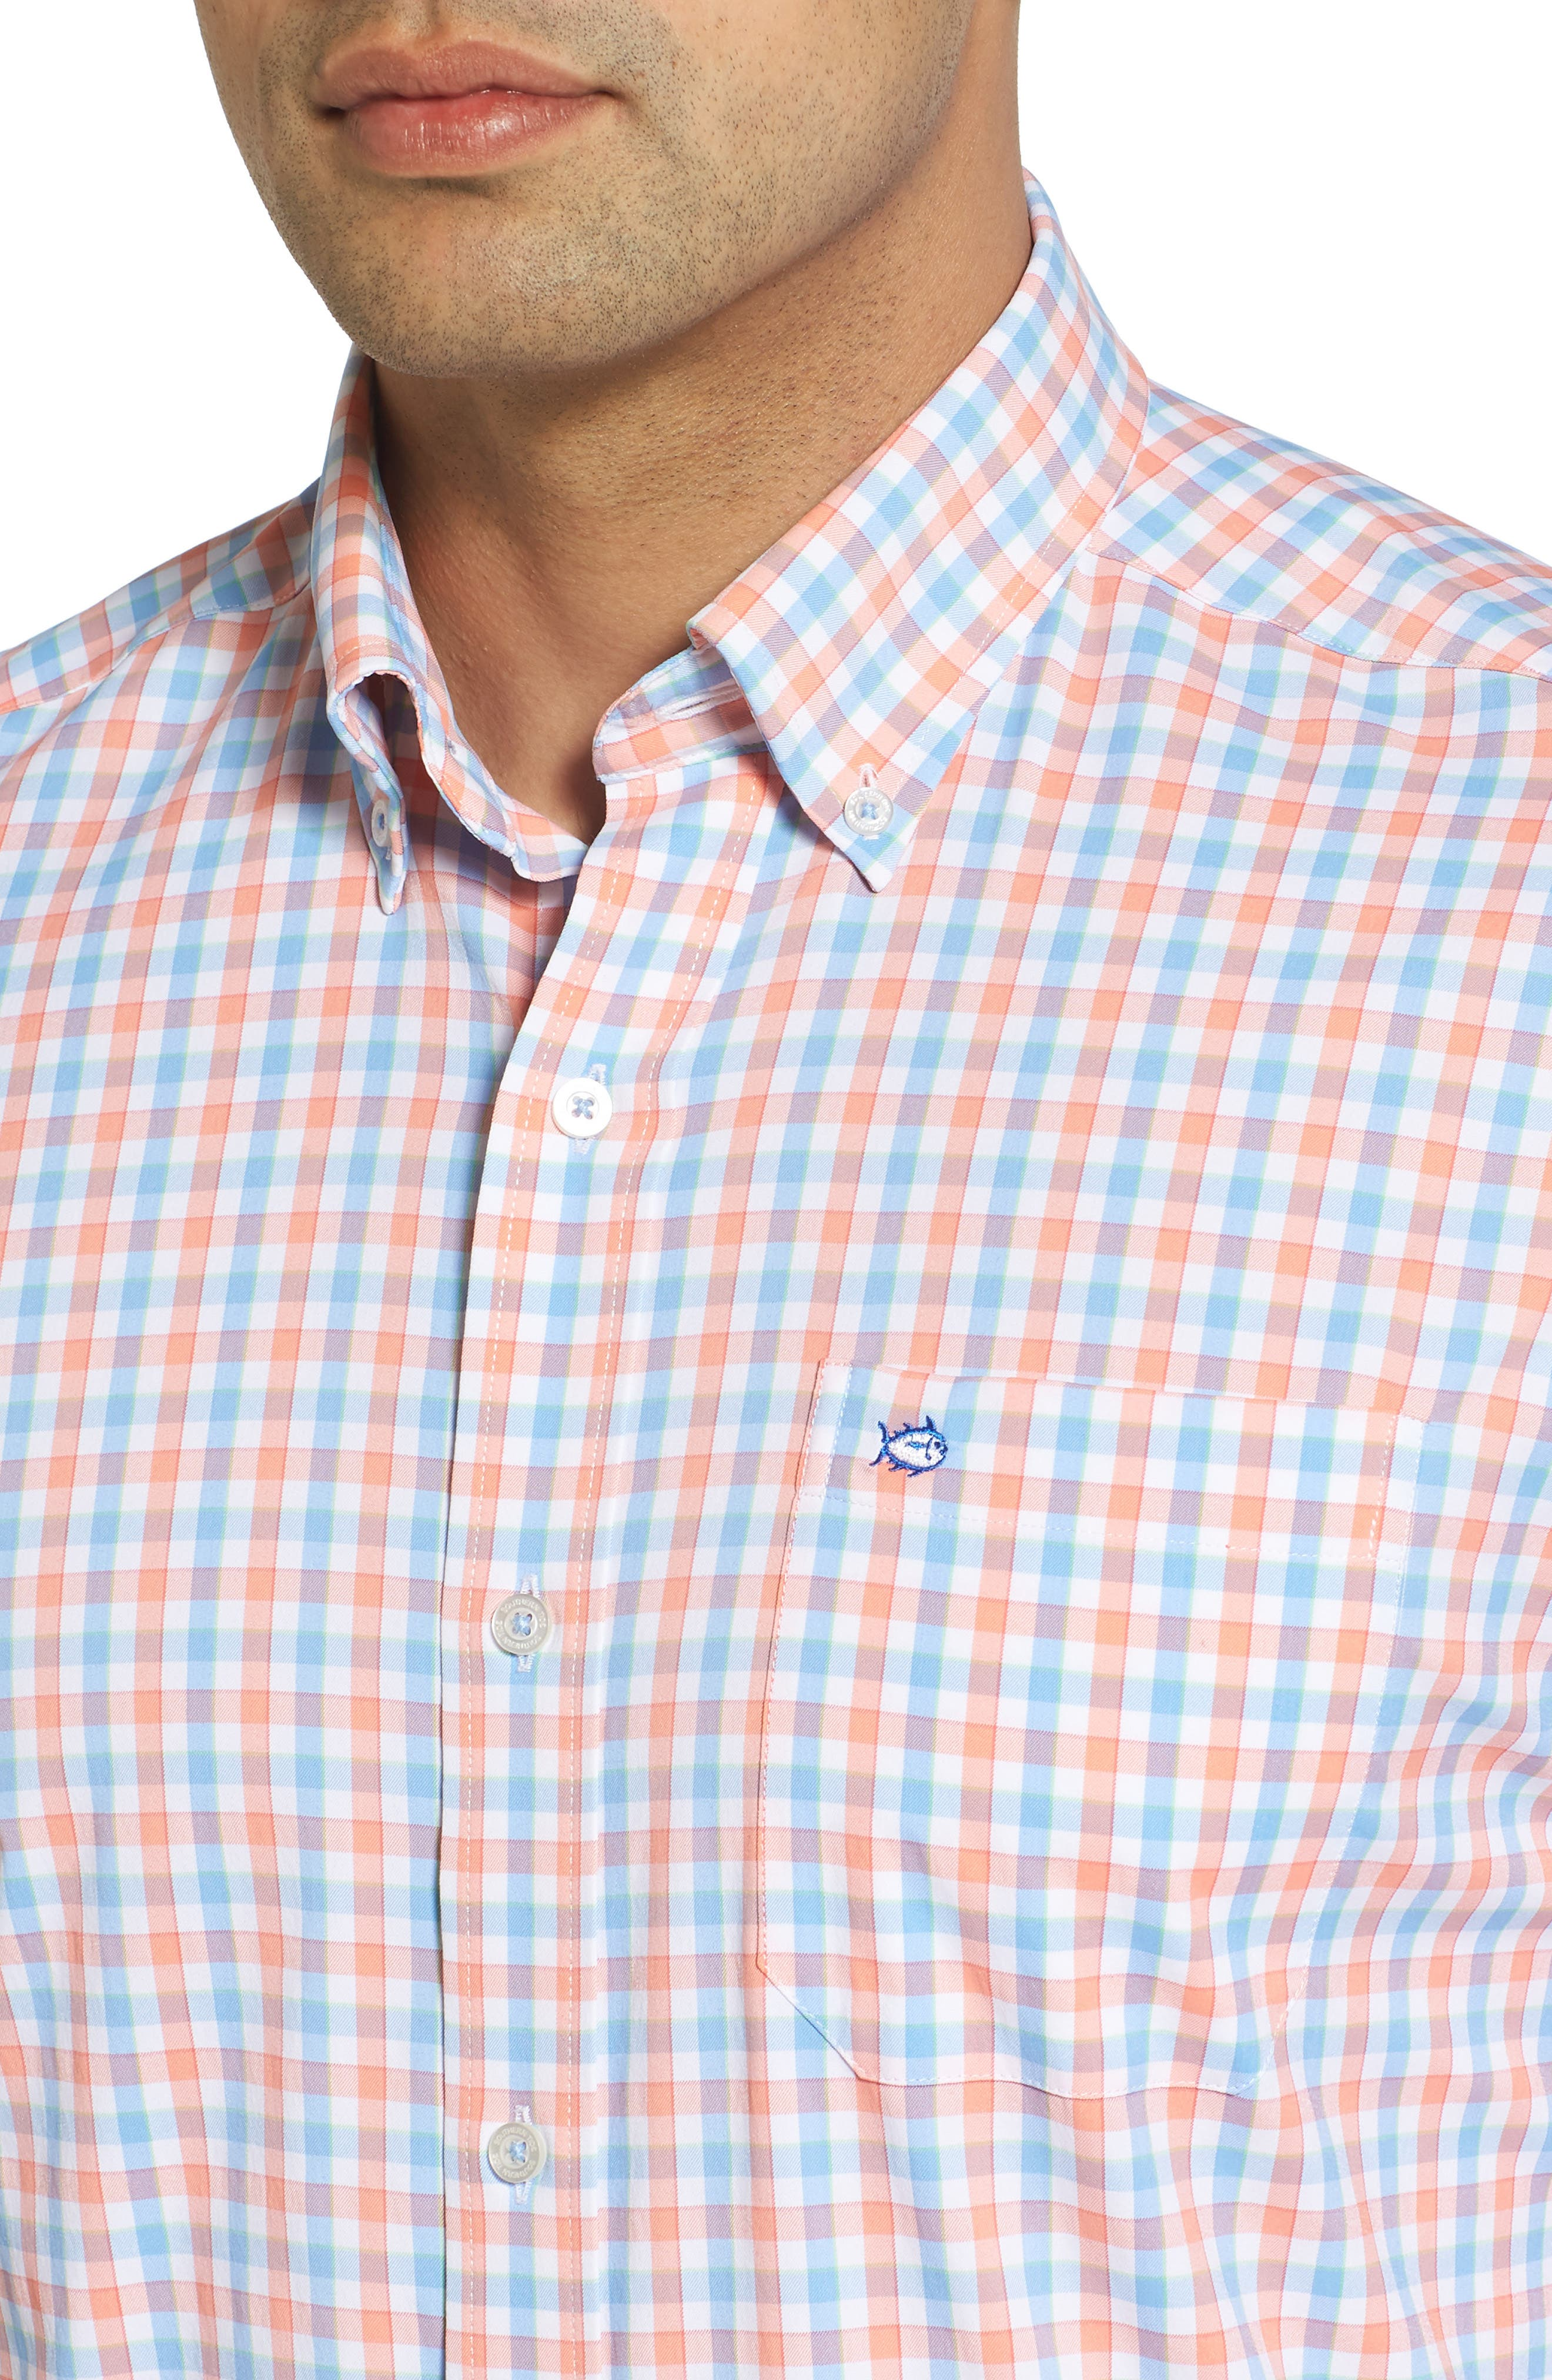 Market Square Regular Fit Stretch Check Sport Shirt,                             Alternate thumbnail 4, color,                             Nectar Coral